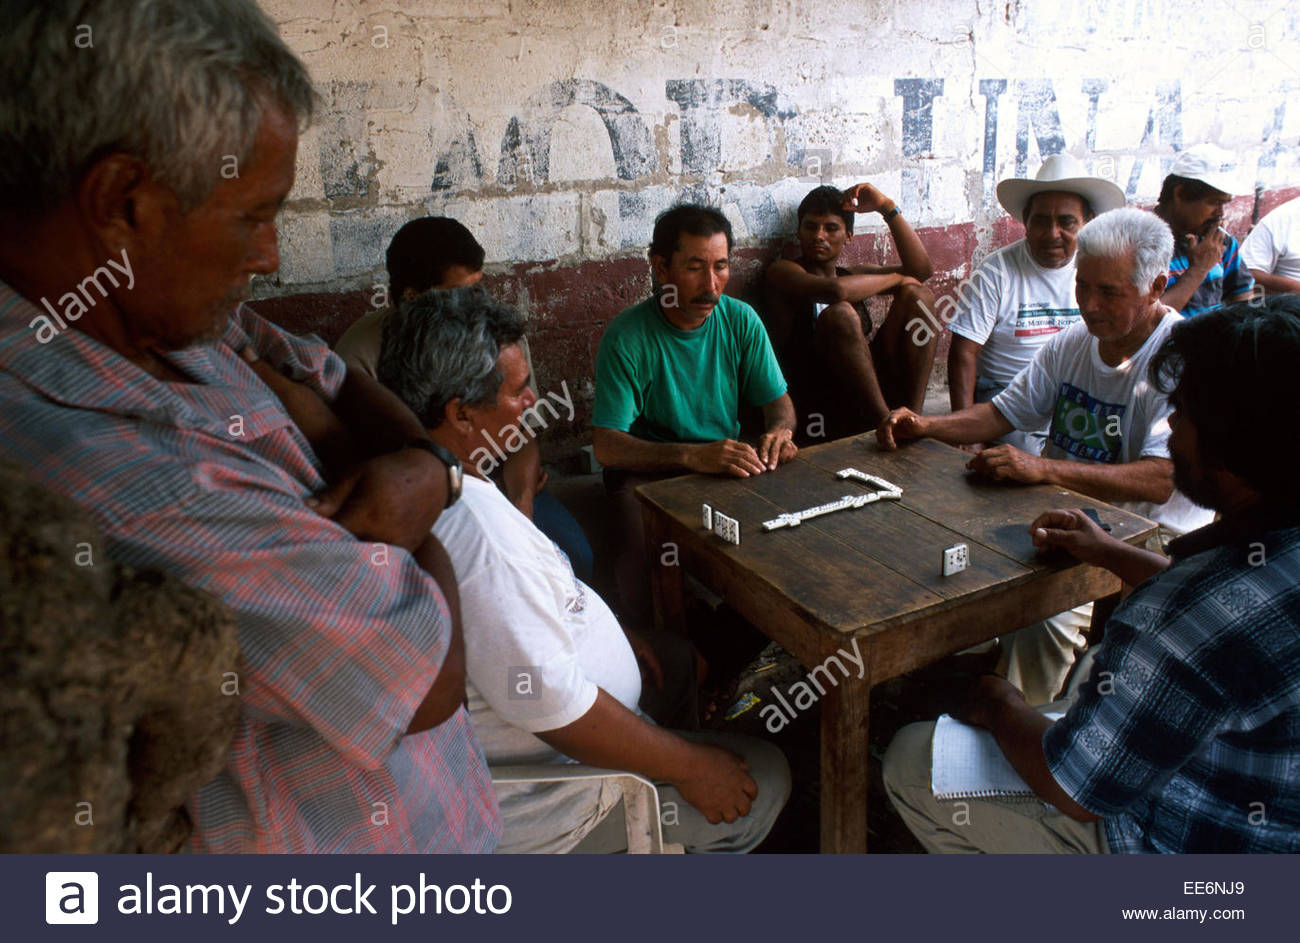 Mexcaltitan, Men playing dominos in one of the streets of the village - Stock Image